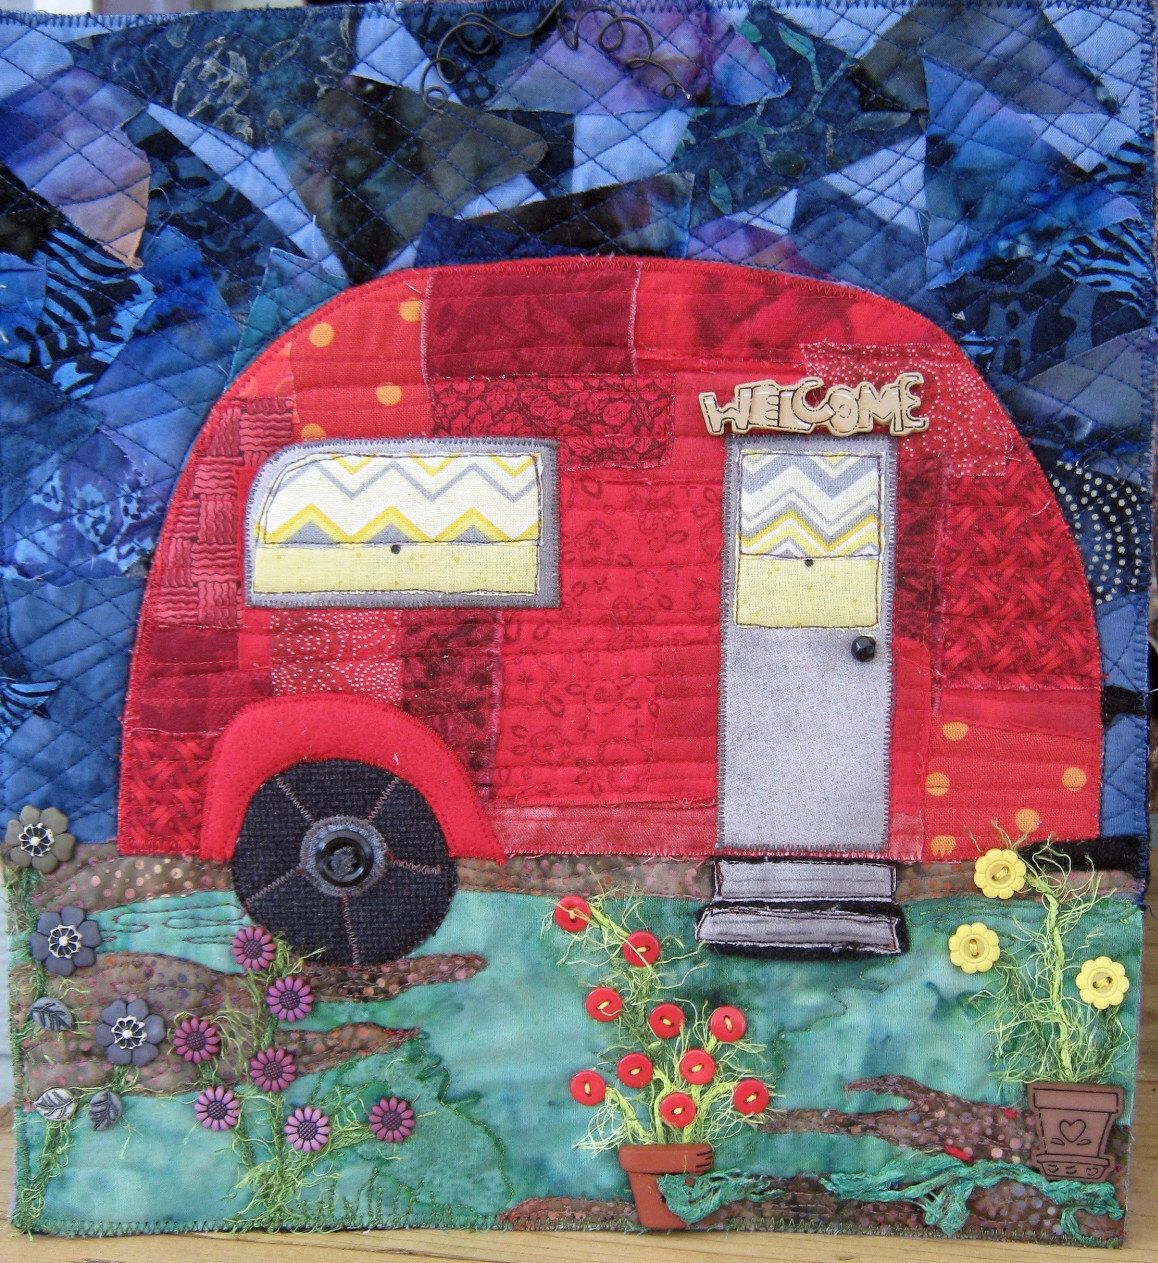 Made to Order, Quilted Wall Hanging, Vintage Camp Trailer, Art Quilt ...